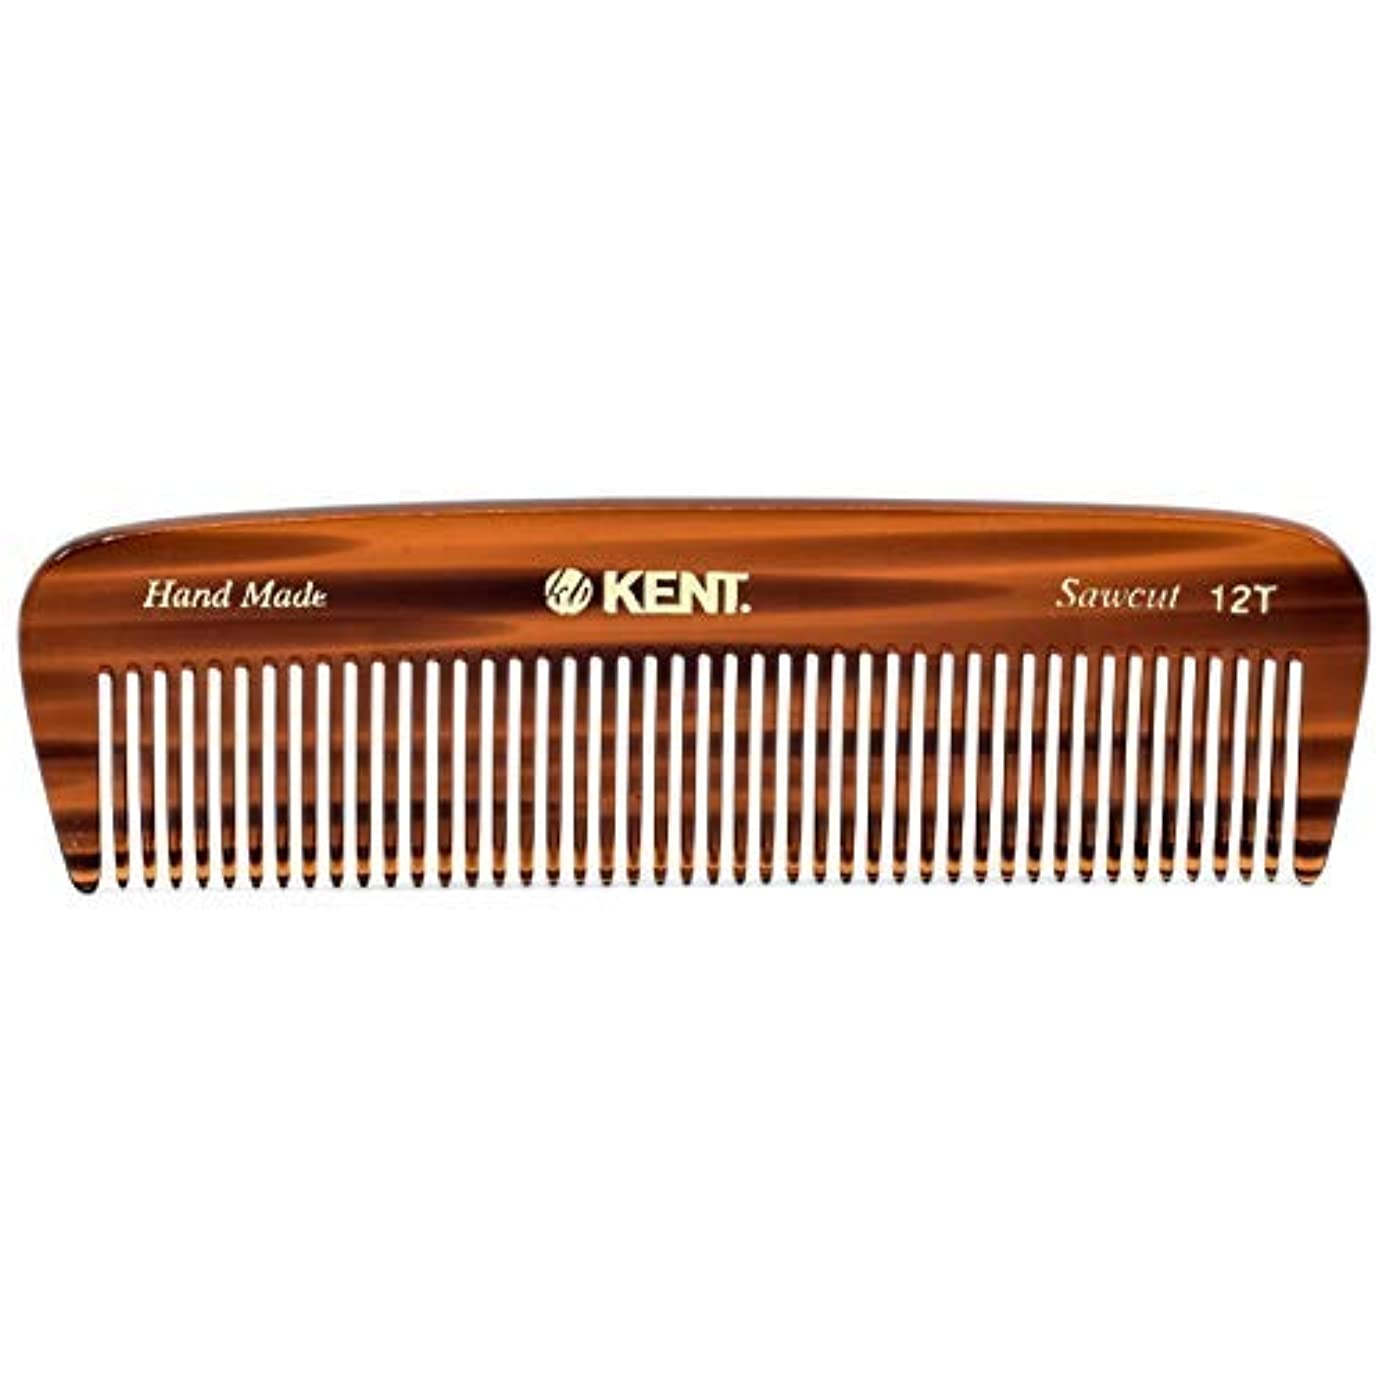 トラブル大聖堂考えたKent 12T Handmade Medium Size Teeth for Thick/Coarse Hair Comb for Men/Women - For Grooming, Styling, and Detangling (5